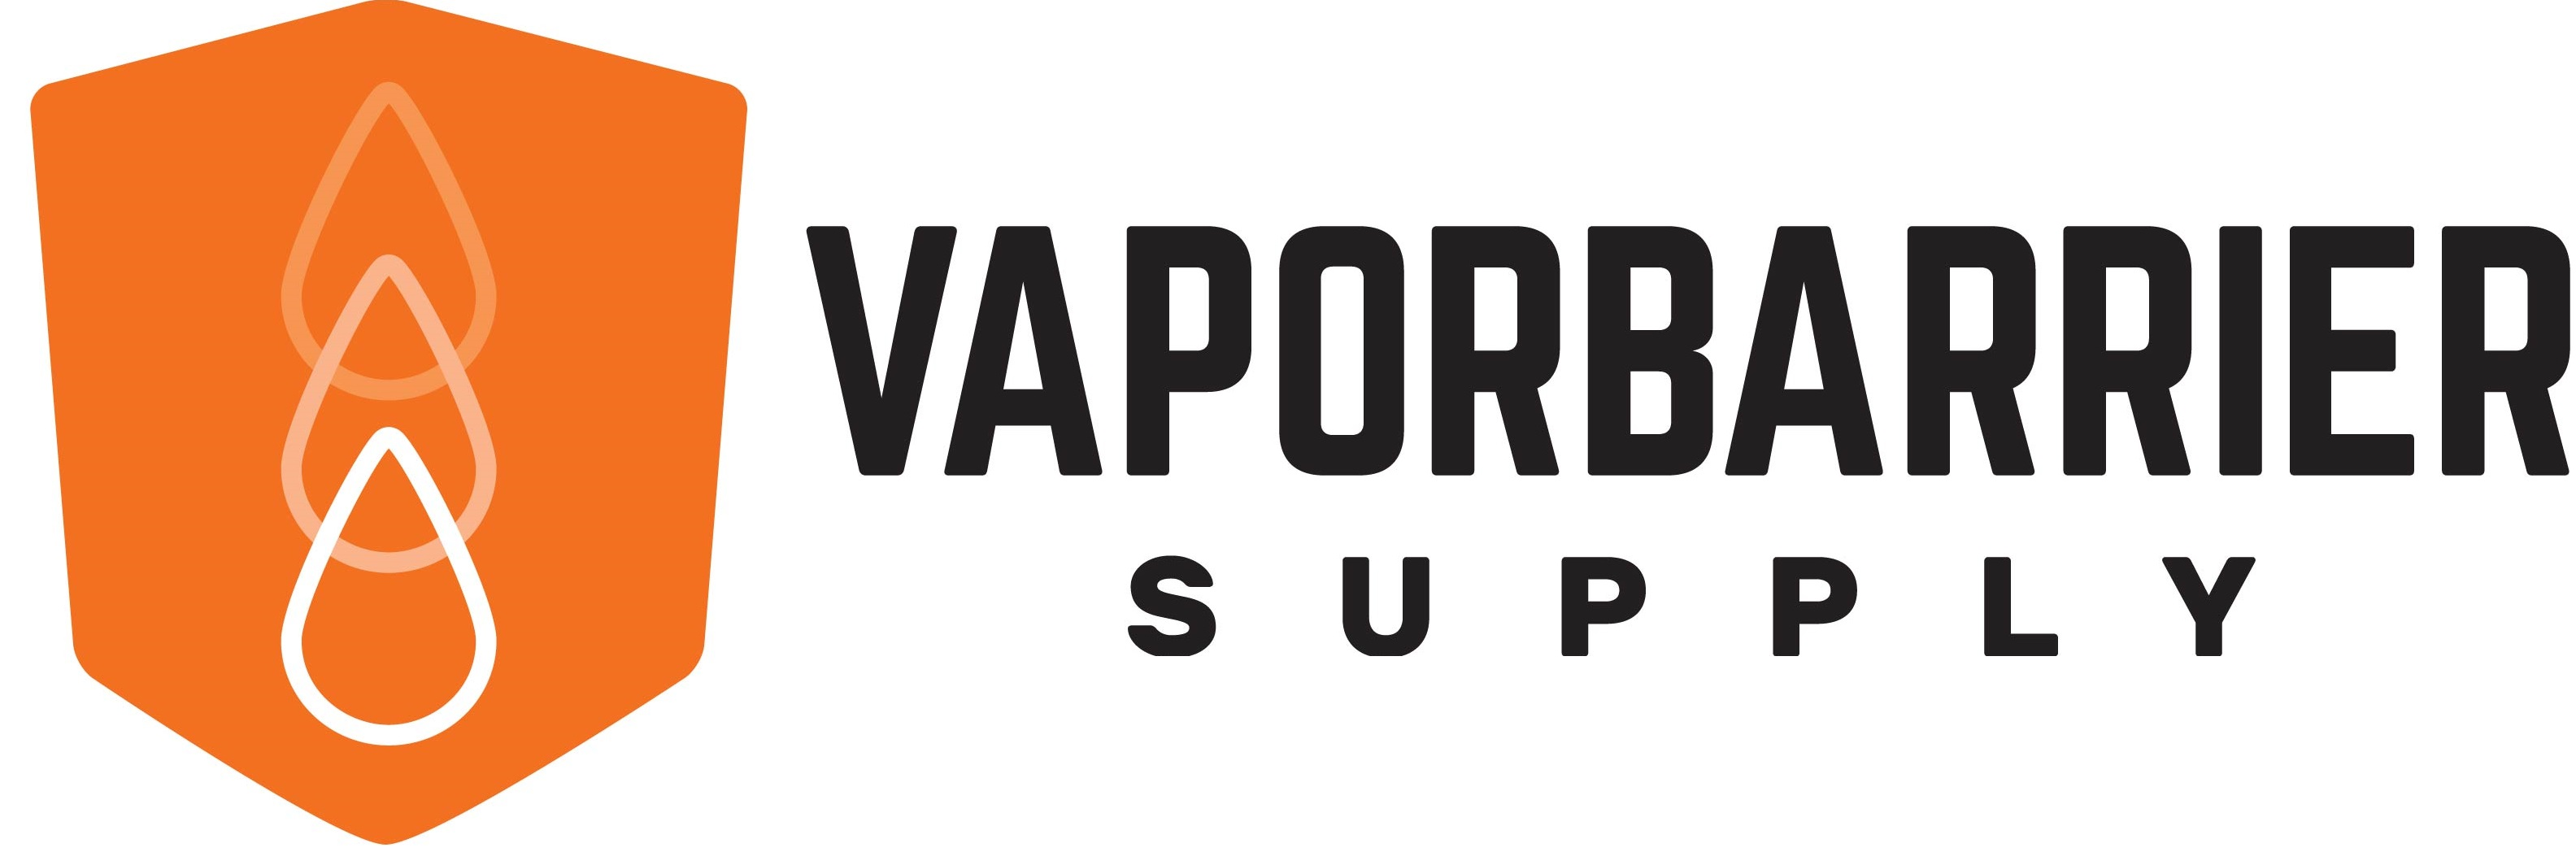 Vapor Barrier Supply